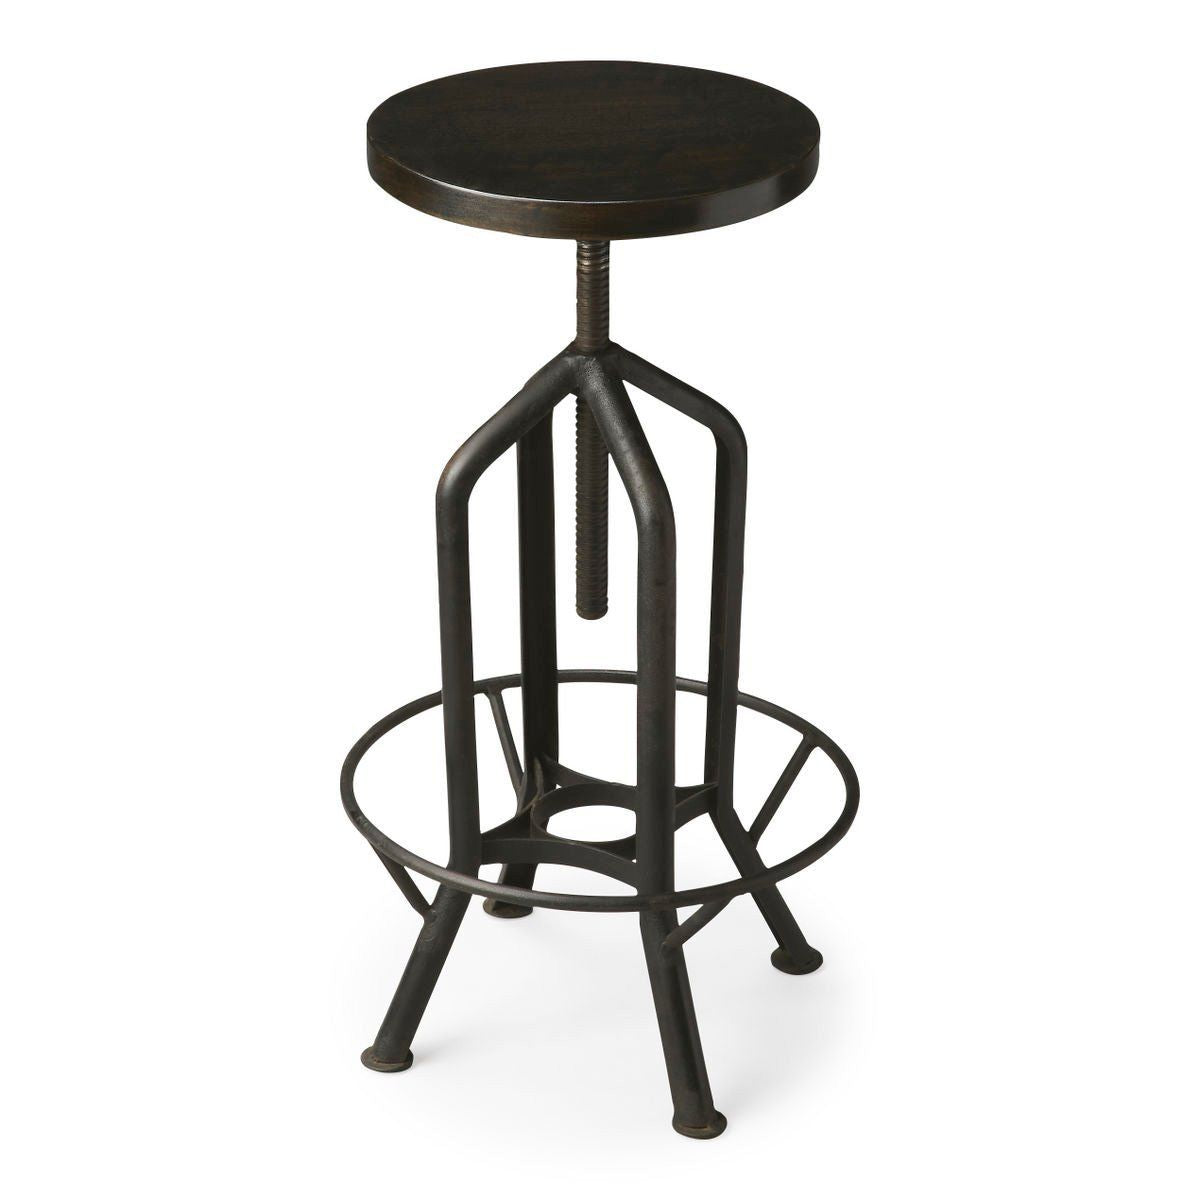 Marvelous Buy Butler Furniture But 2883025 Hampton Industrial Modern Round Revolving Bar Stool Black At Contemporary Furniture Warehouse Ncnpc Chair Design For Home Ncnpcorg